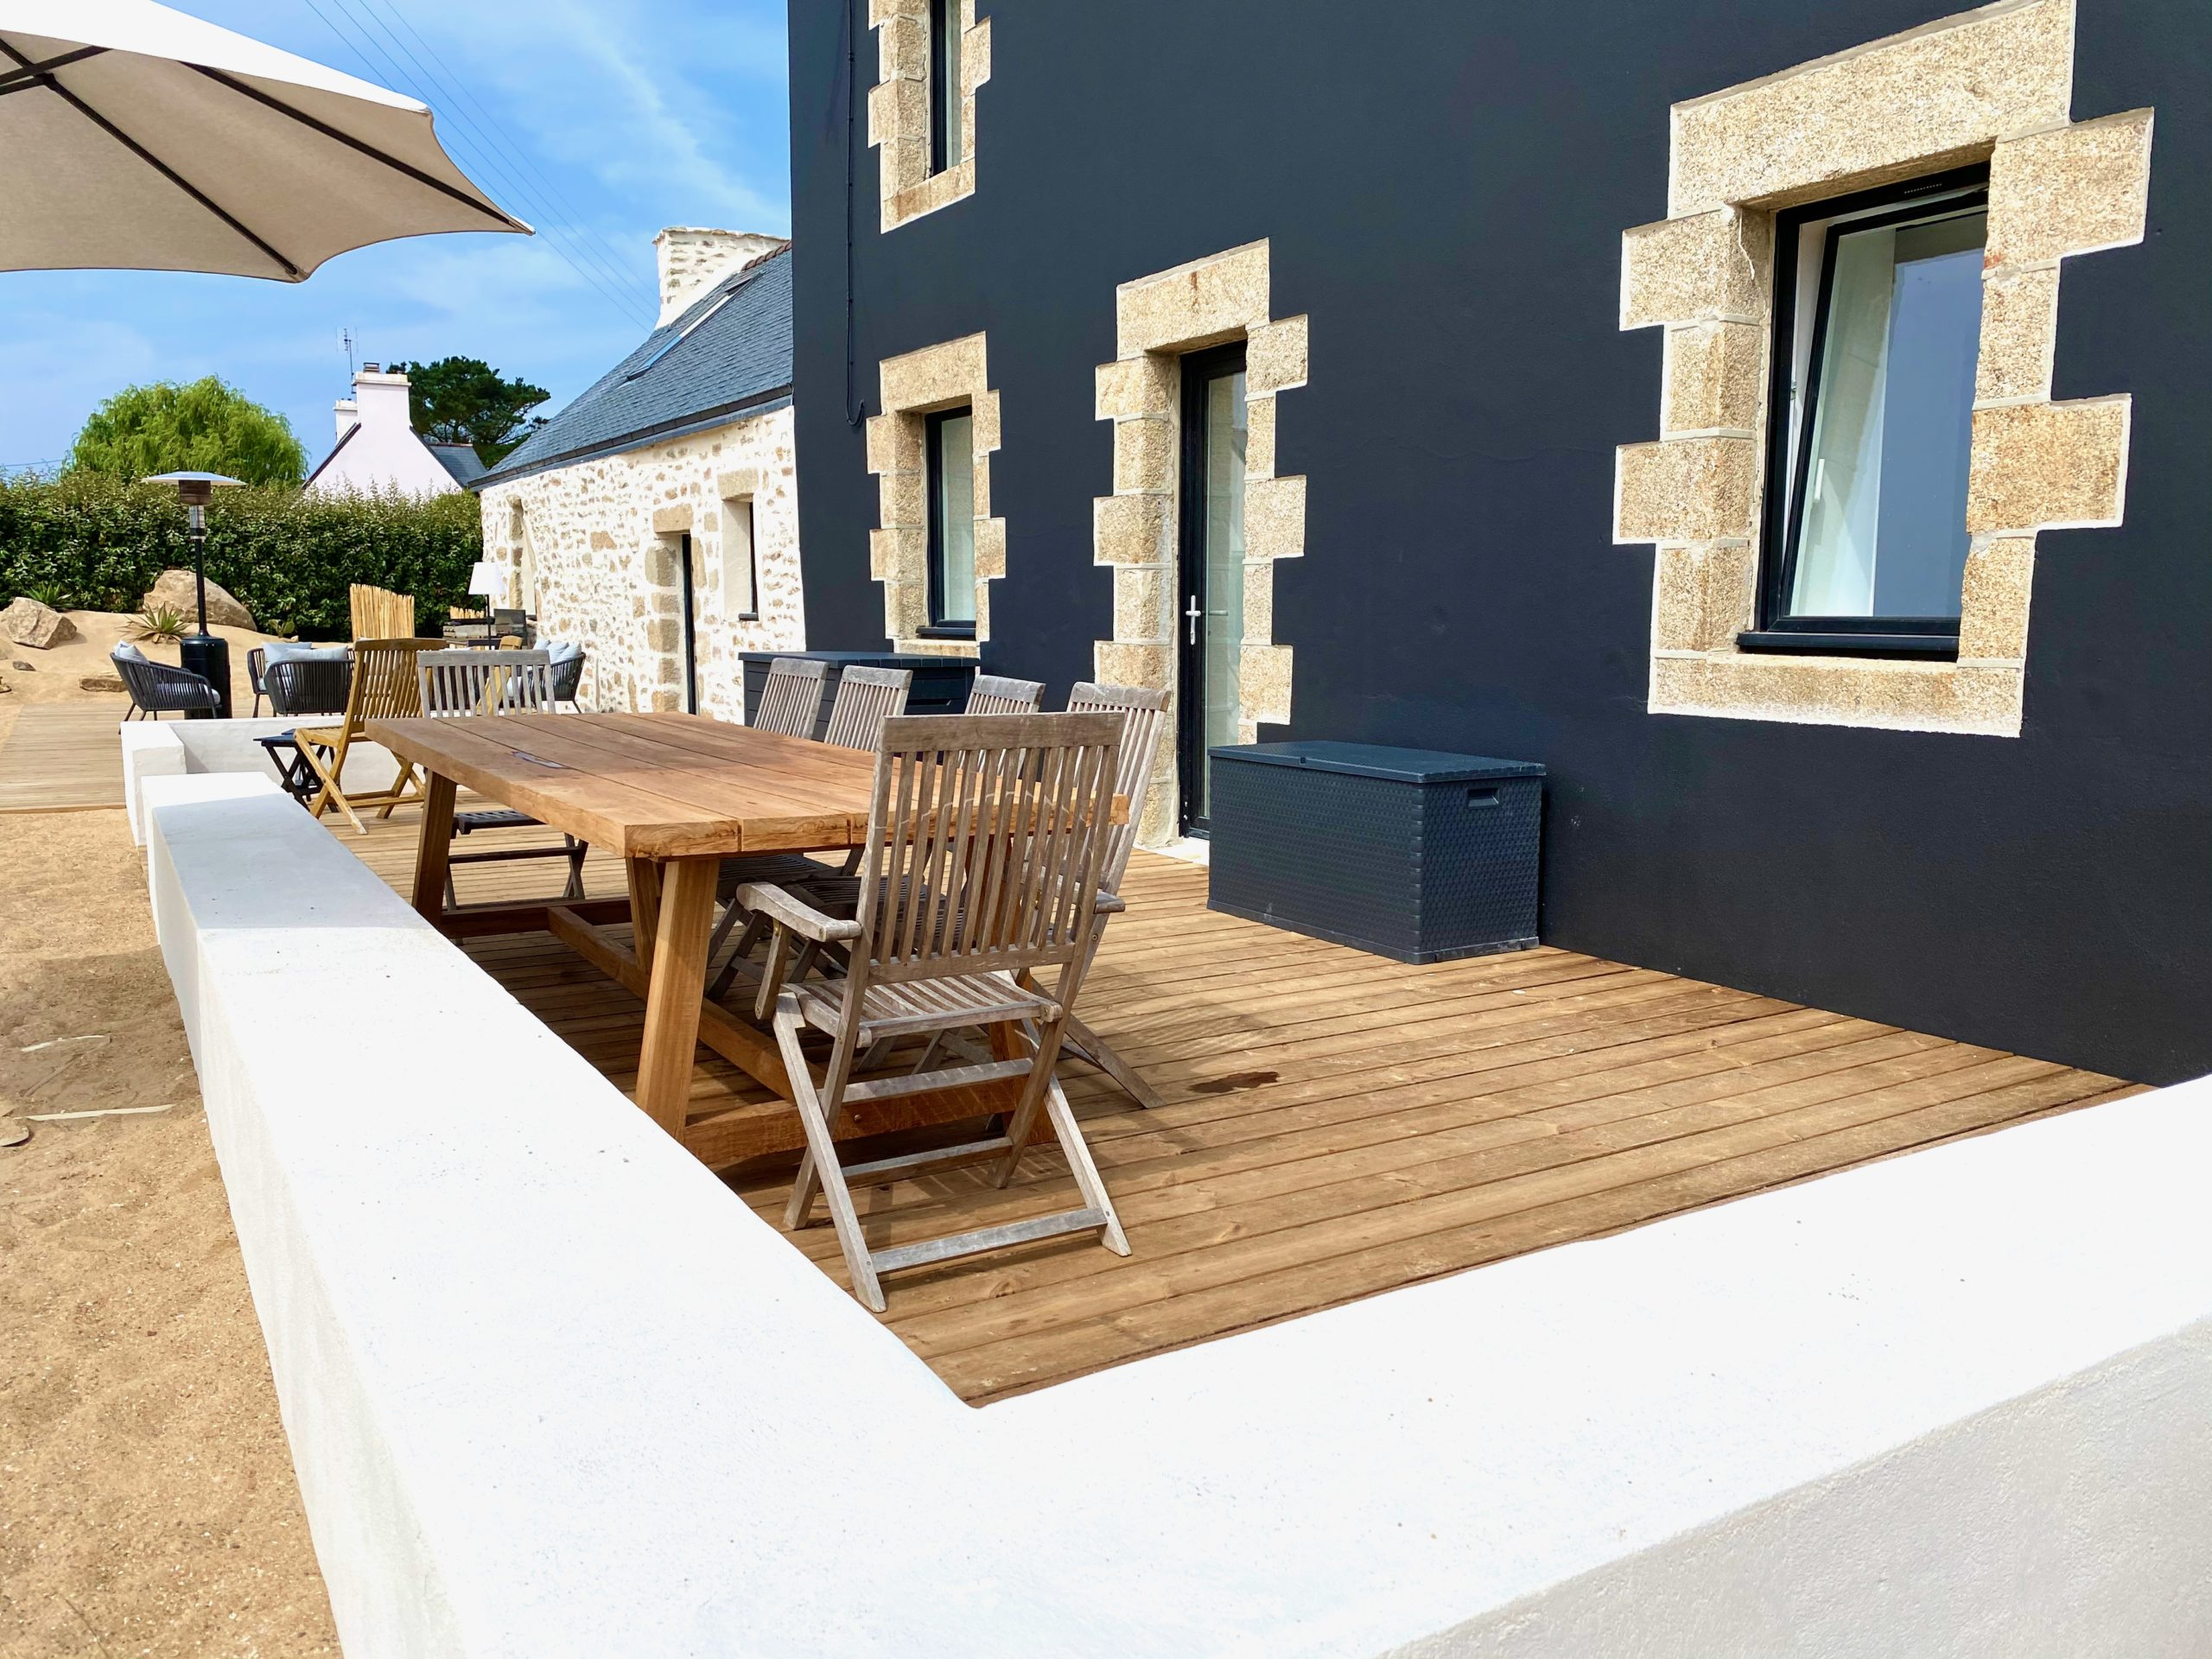 Large terrace with dining table for 10 to 12 people